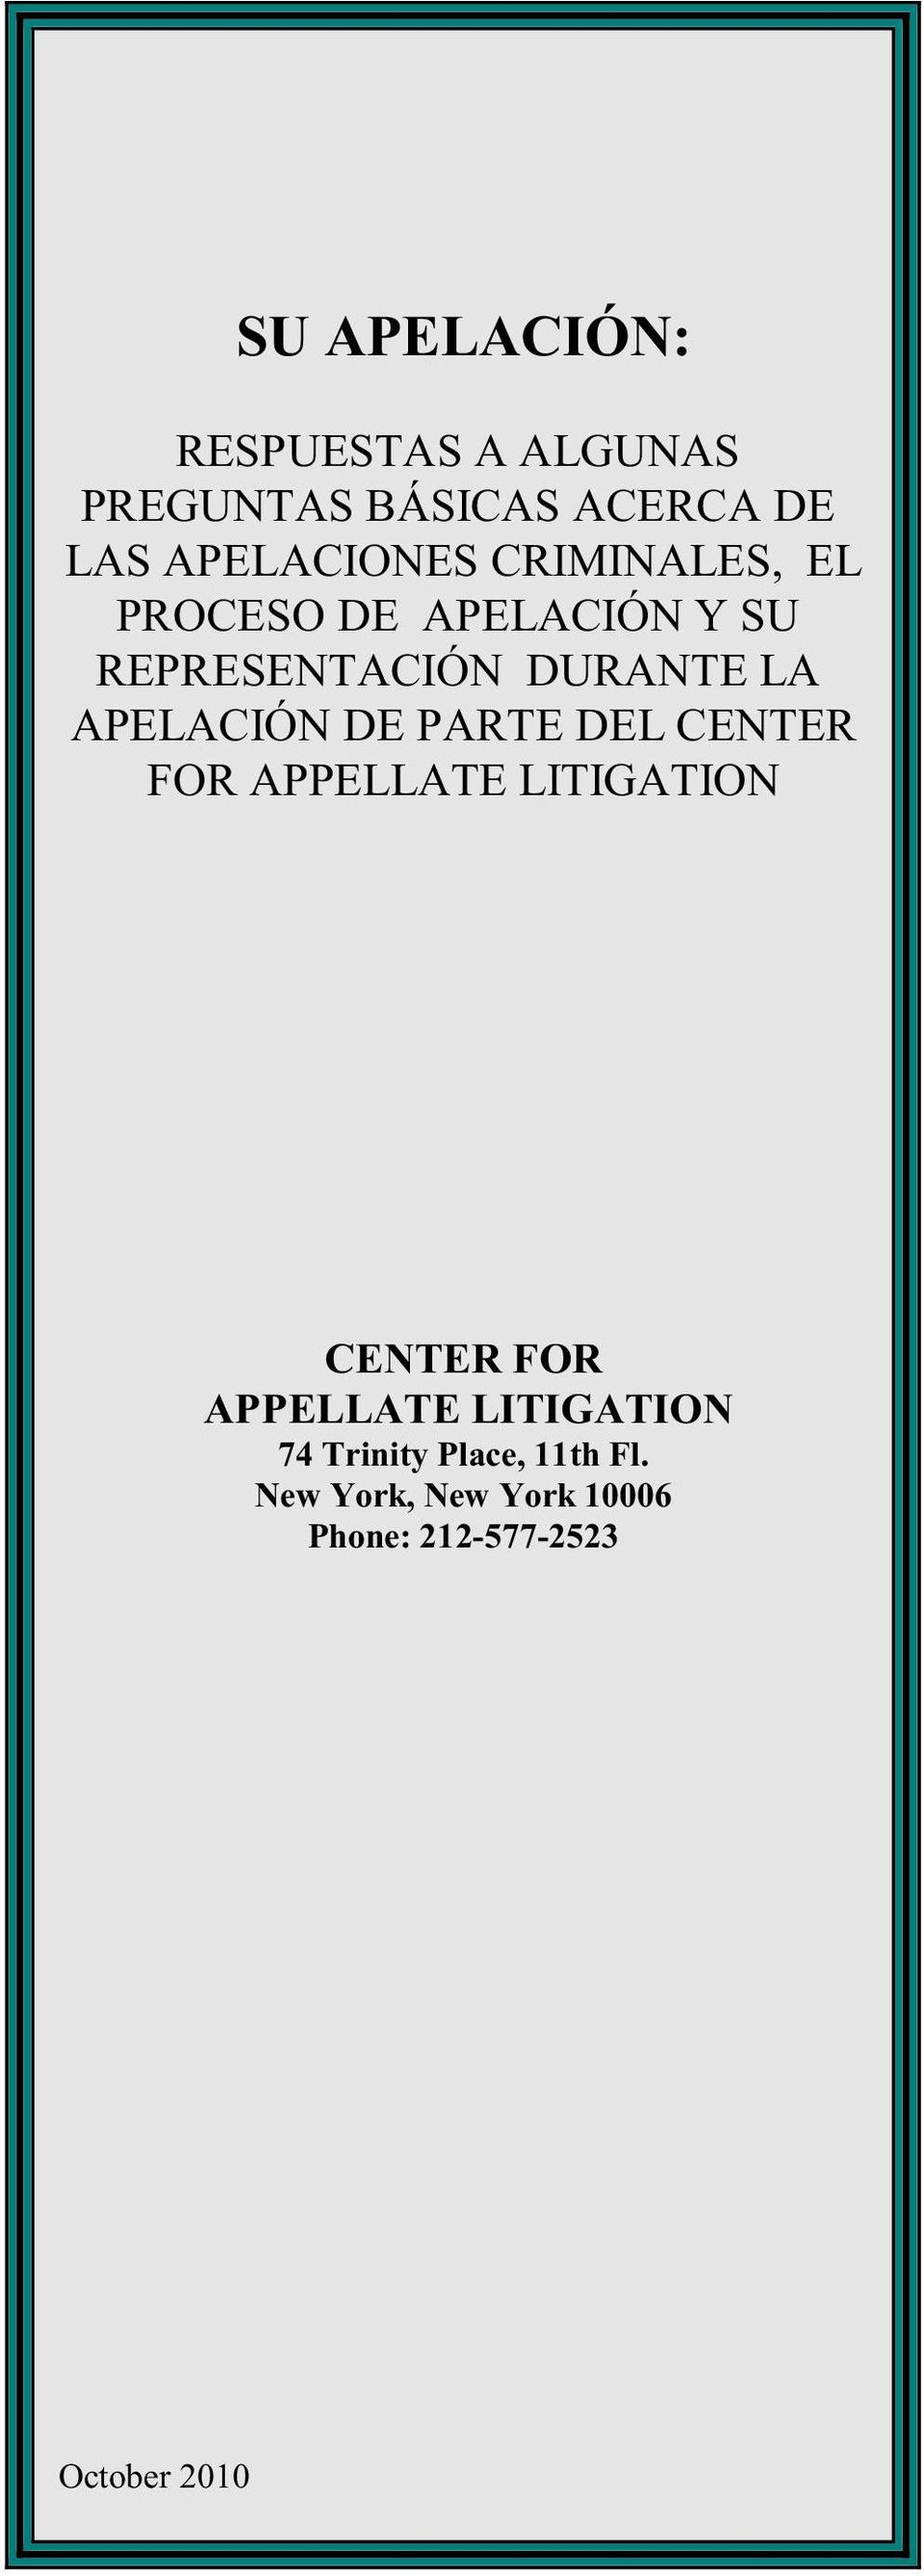 PARTE DEL CENTER FOR APPELLATE LITIGATION CENTER FOR APPELLATE LITIGATION 74